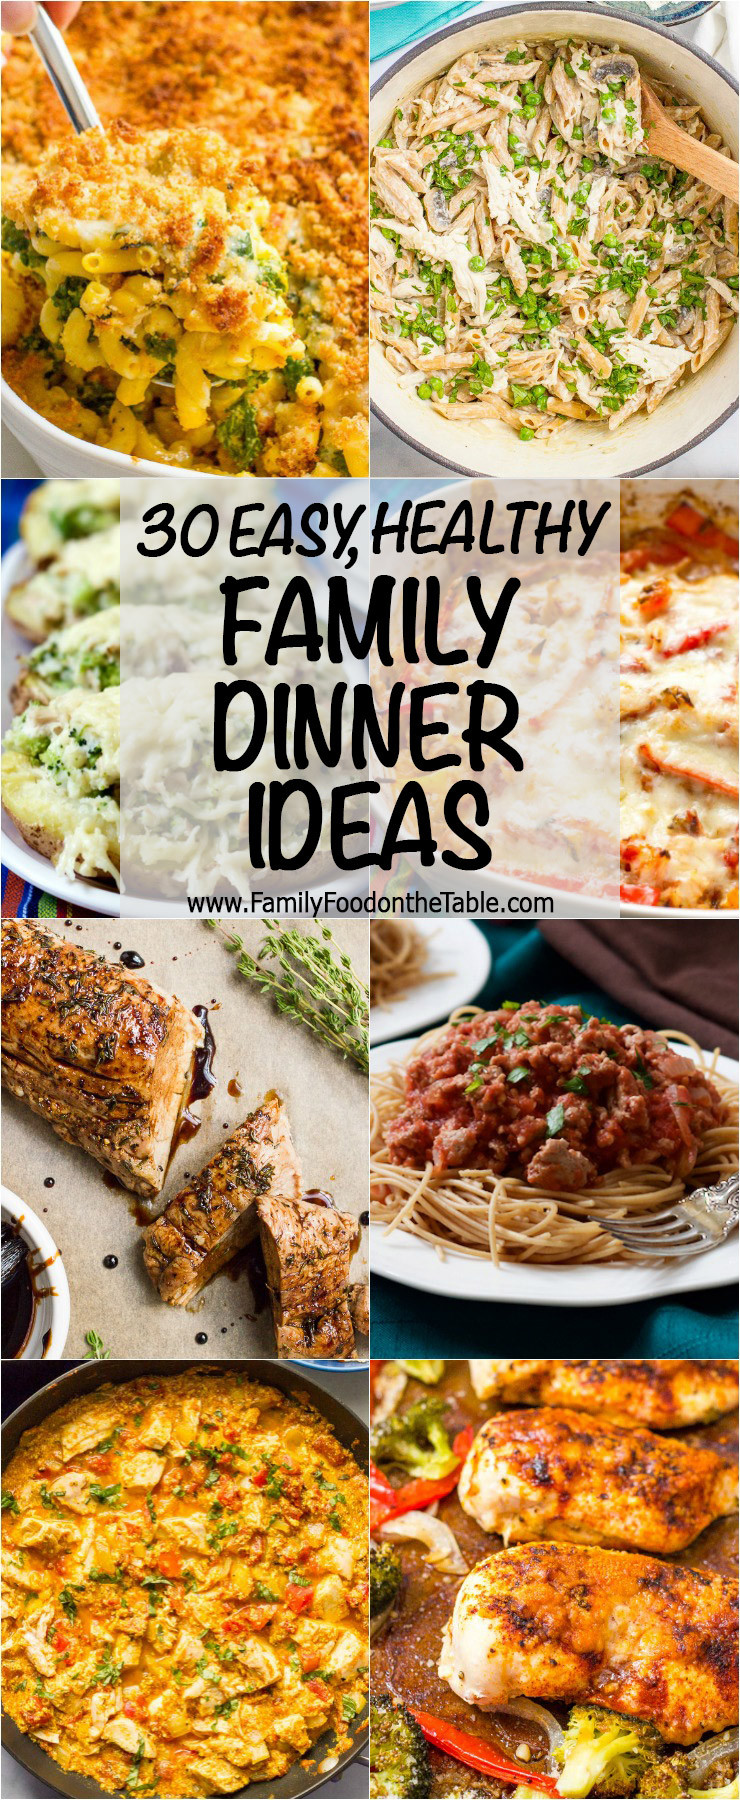 Fast Healthy Dinners For Family  30 easy healthy family dinner ideas Family Food on the Table